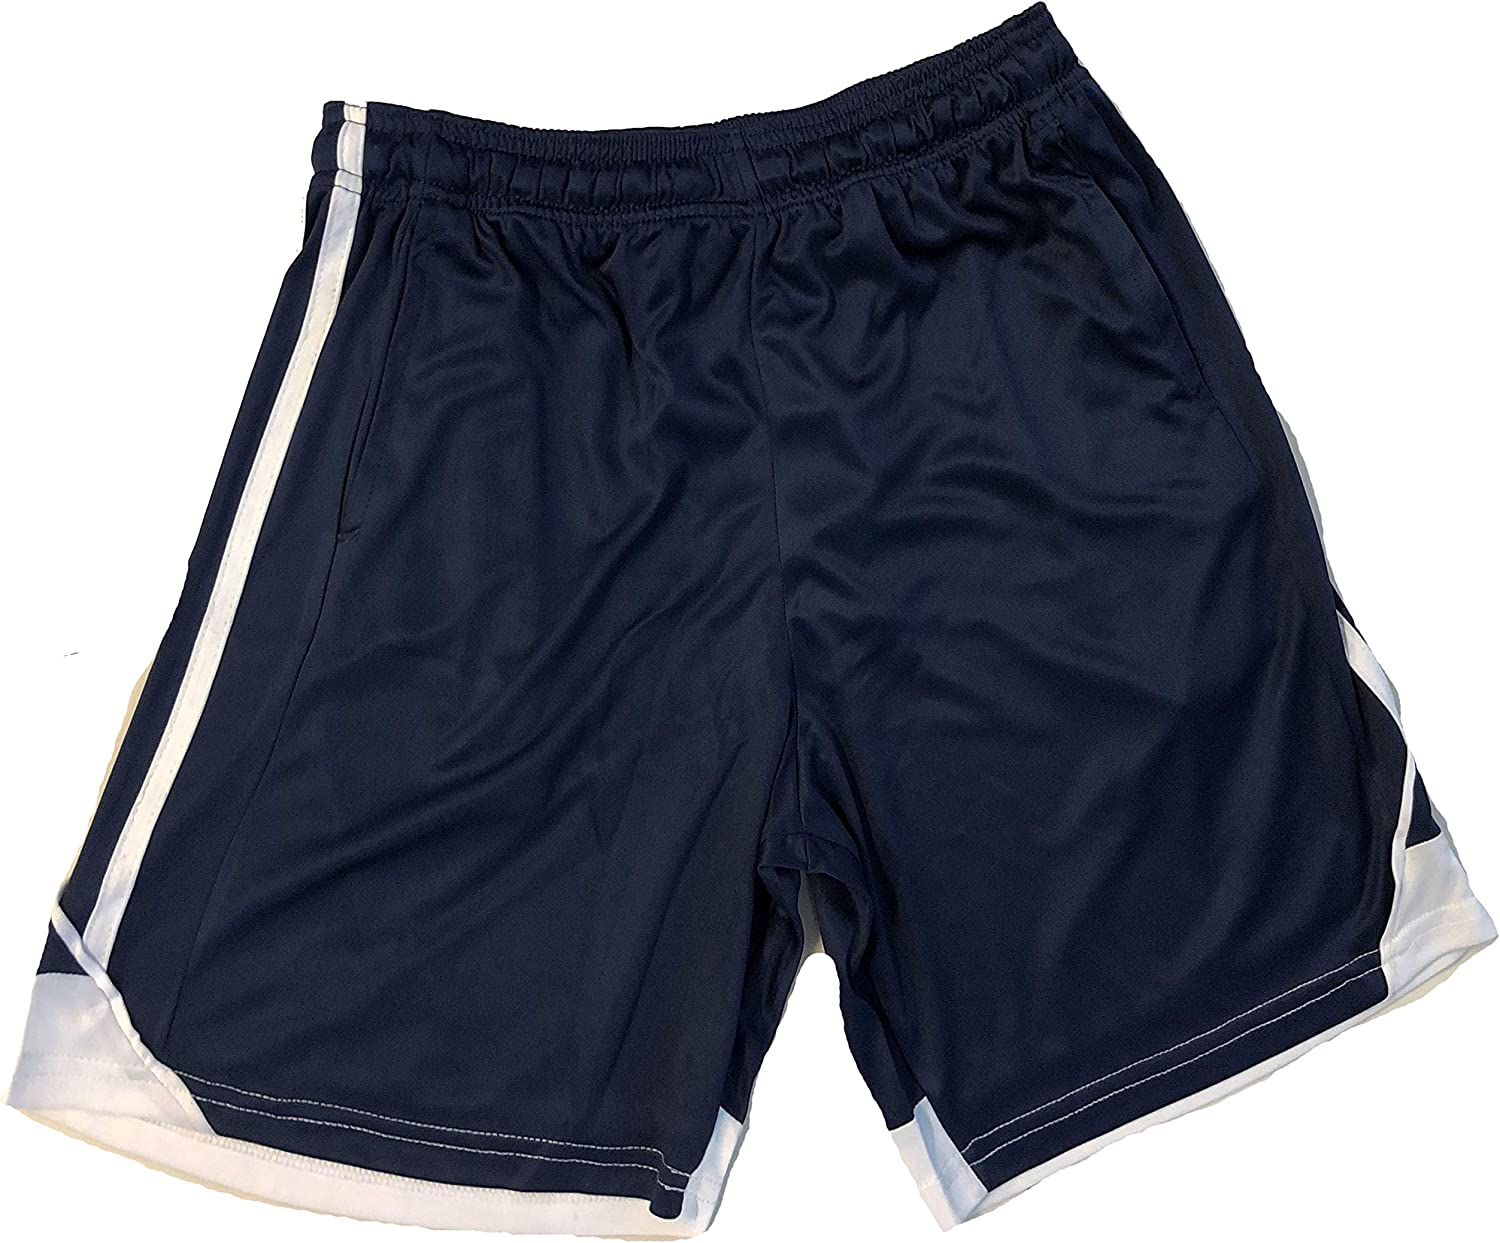 At The Buzzer Boys Athletic Stripe Basketball Sports Shorts with Pockets